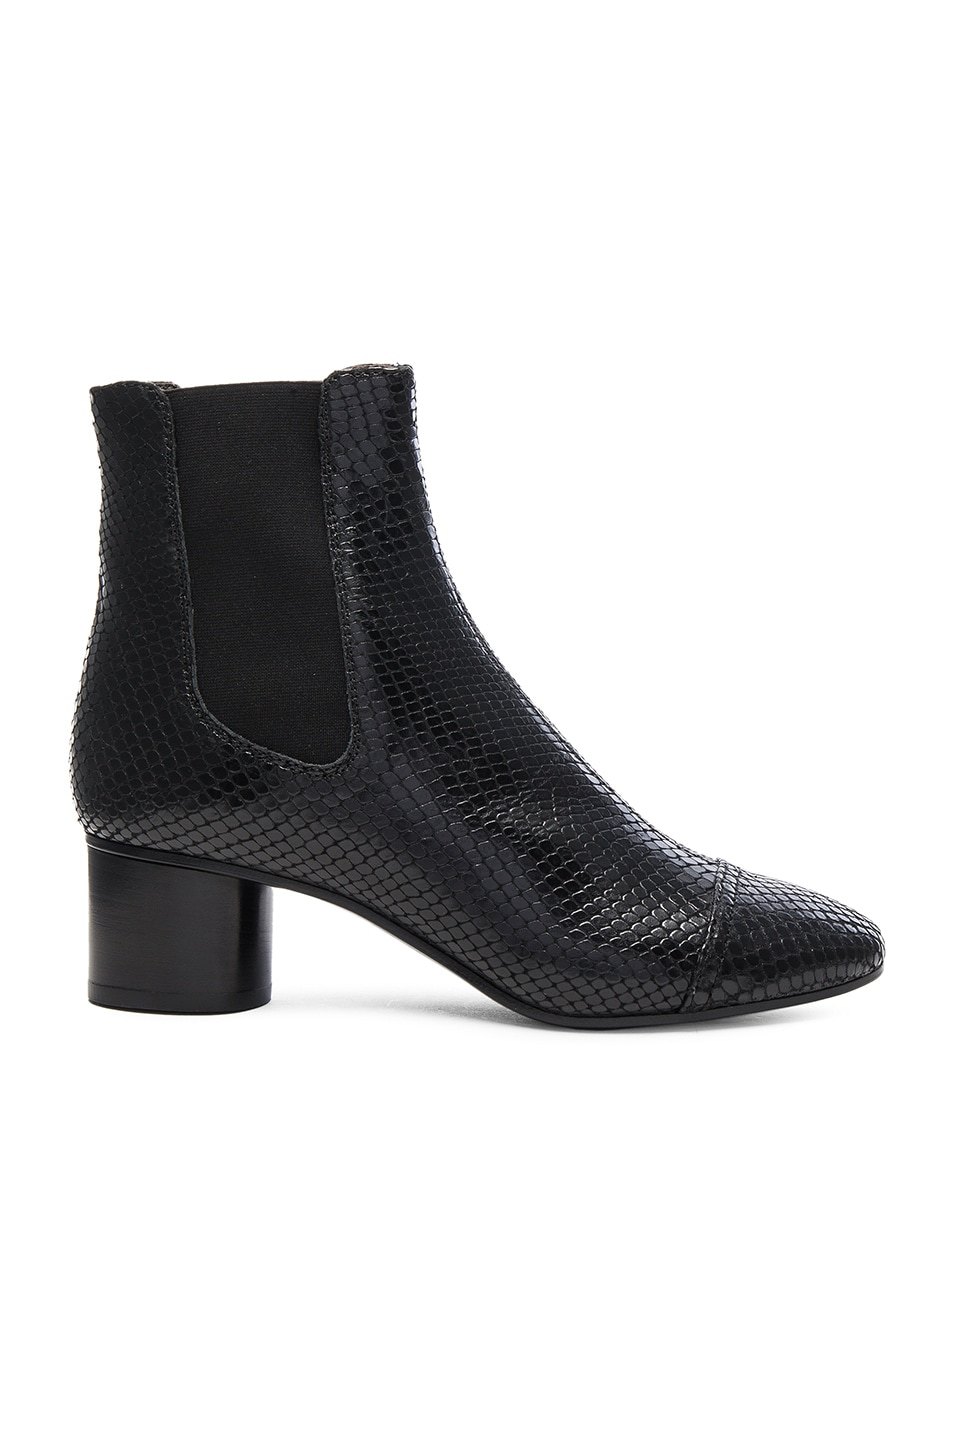 Image 1 of Isabel Marant Danae Printed Python Booties in Black